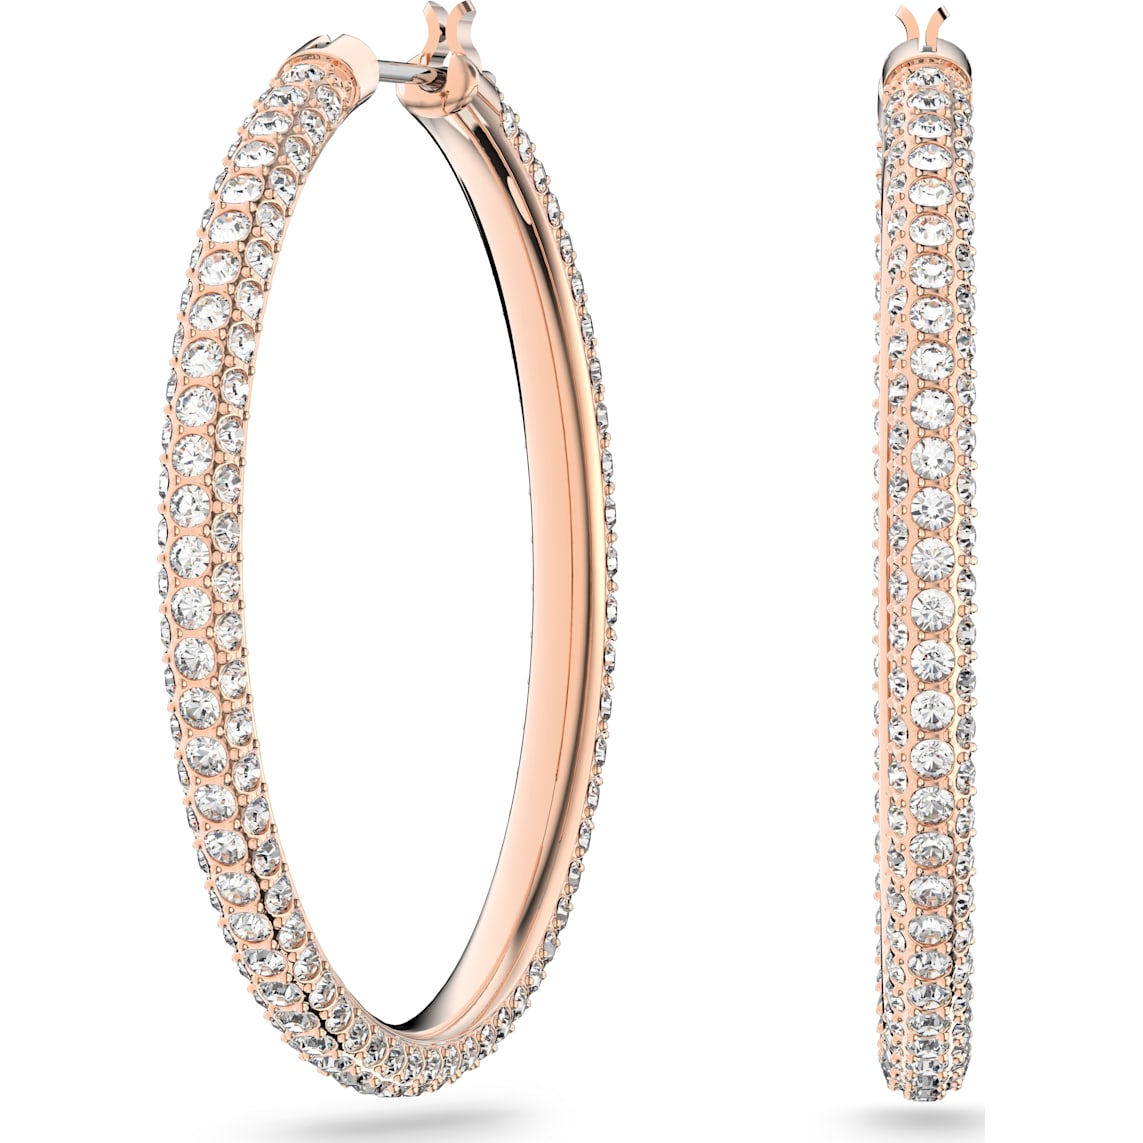 Stone Hoop Pierced Earrings Pink Rose Gold Tone Plated